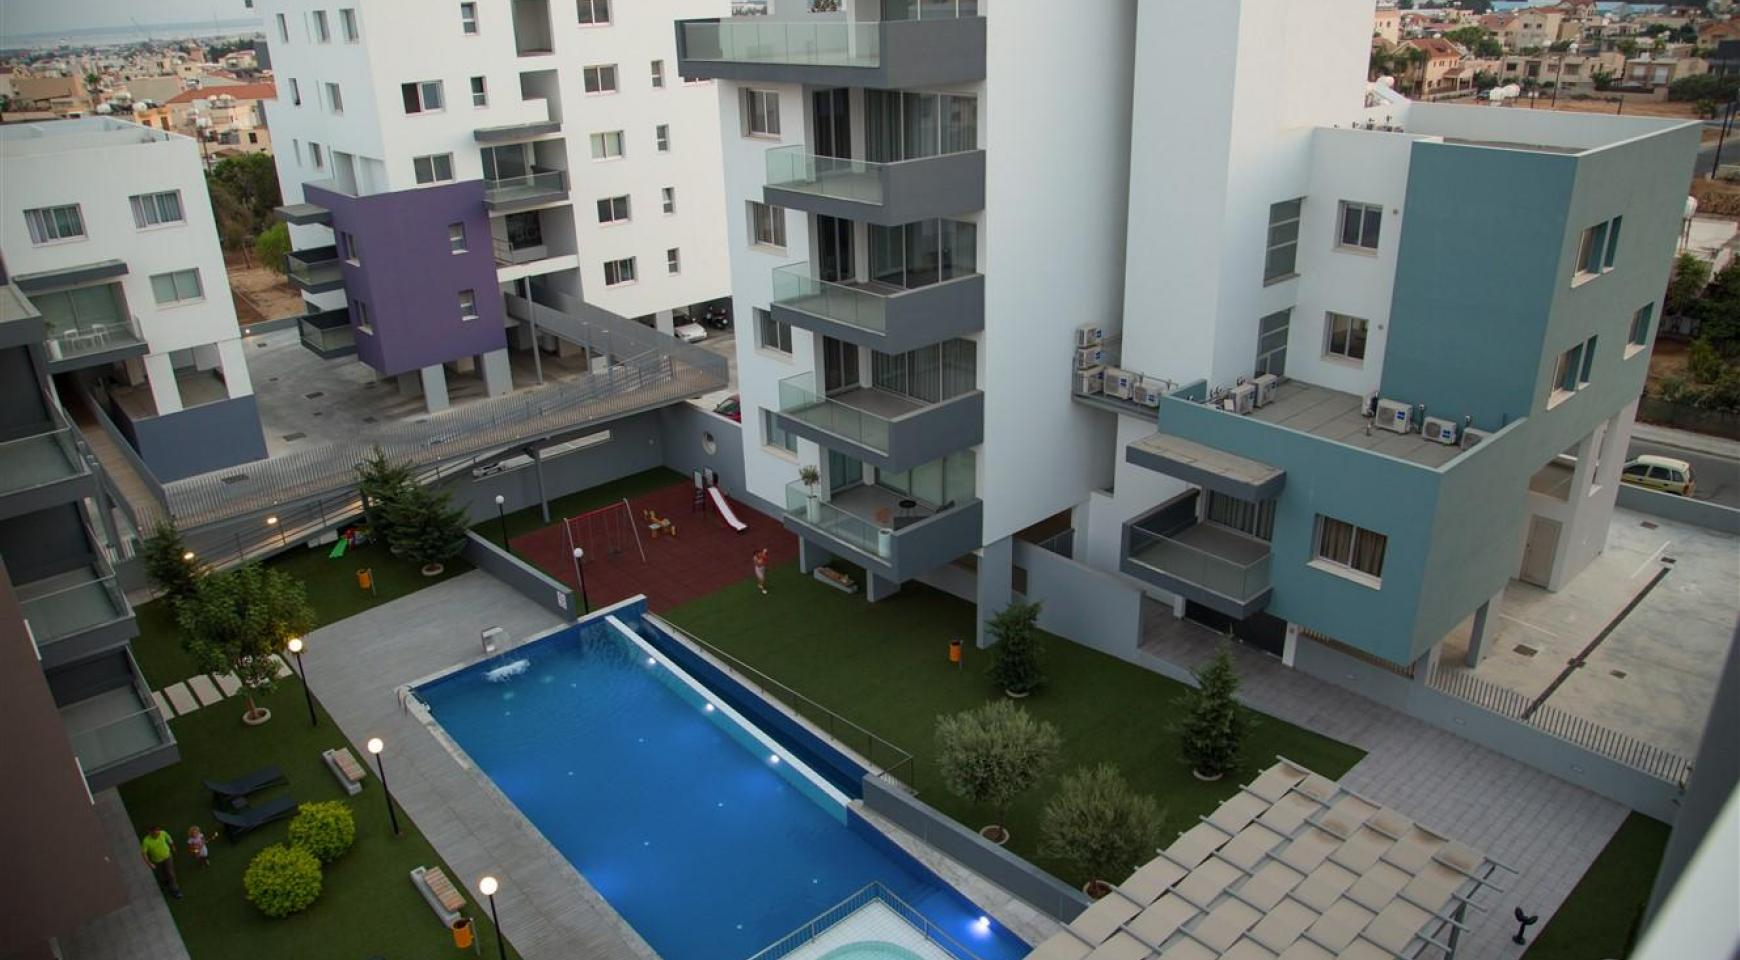 Elite 3 Bedroom Penthouse with private Swimming Pool on the Roof - 3